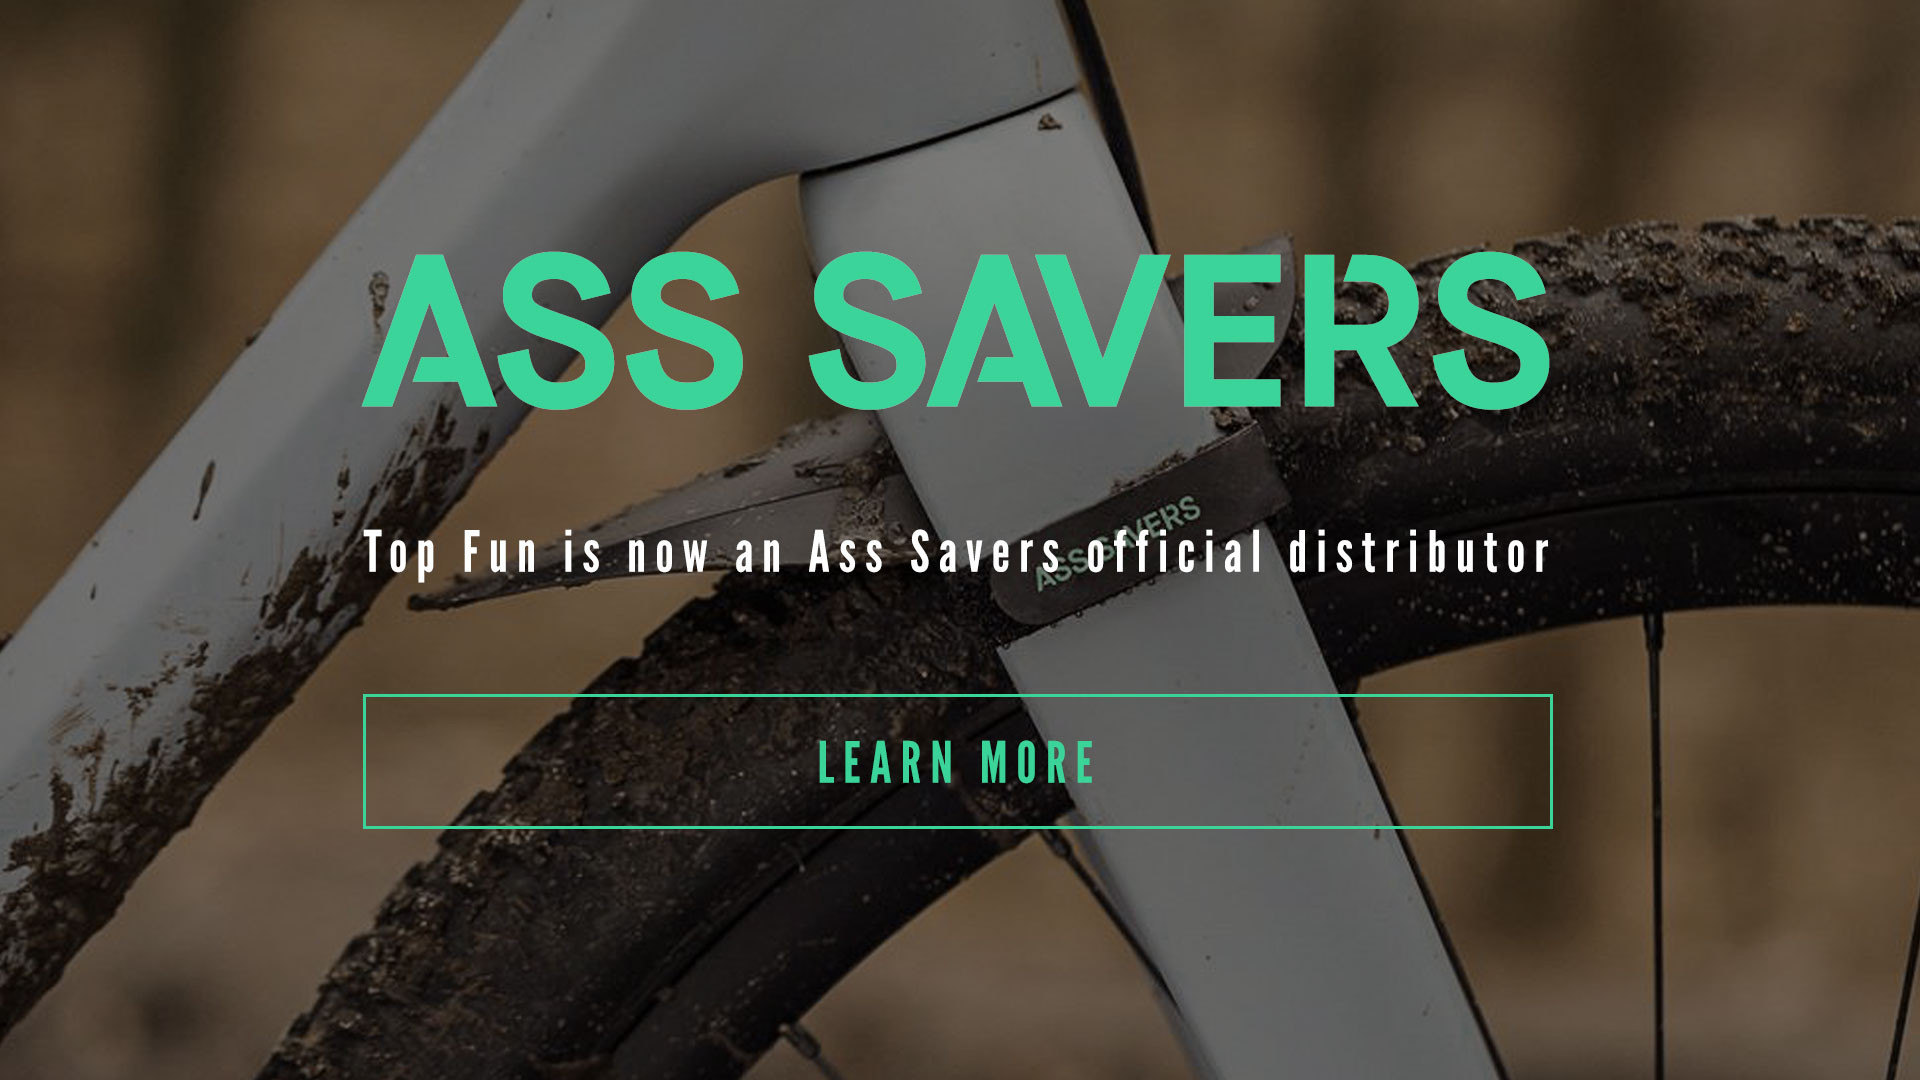 DISTRIBUIDOR OFICIAL DE ASS SAVERS